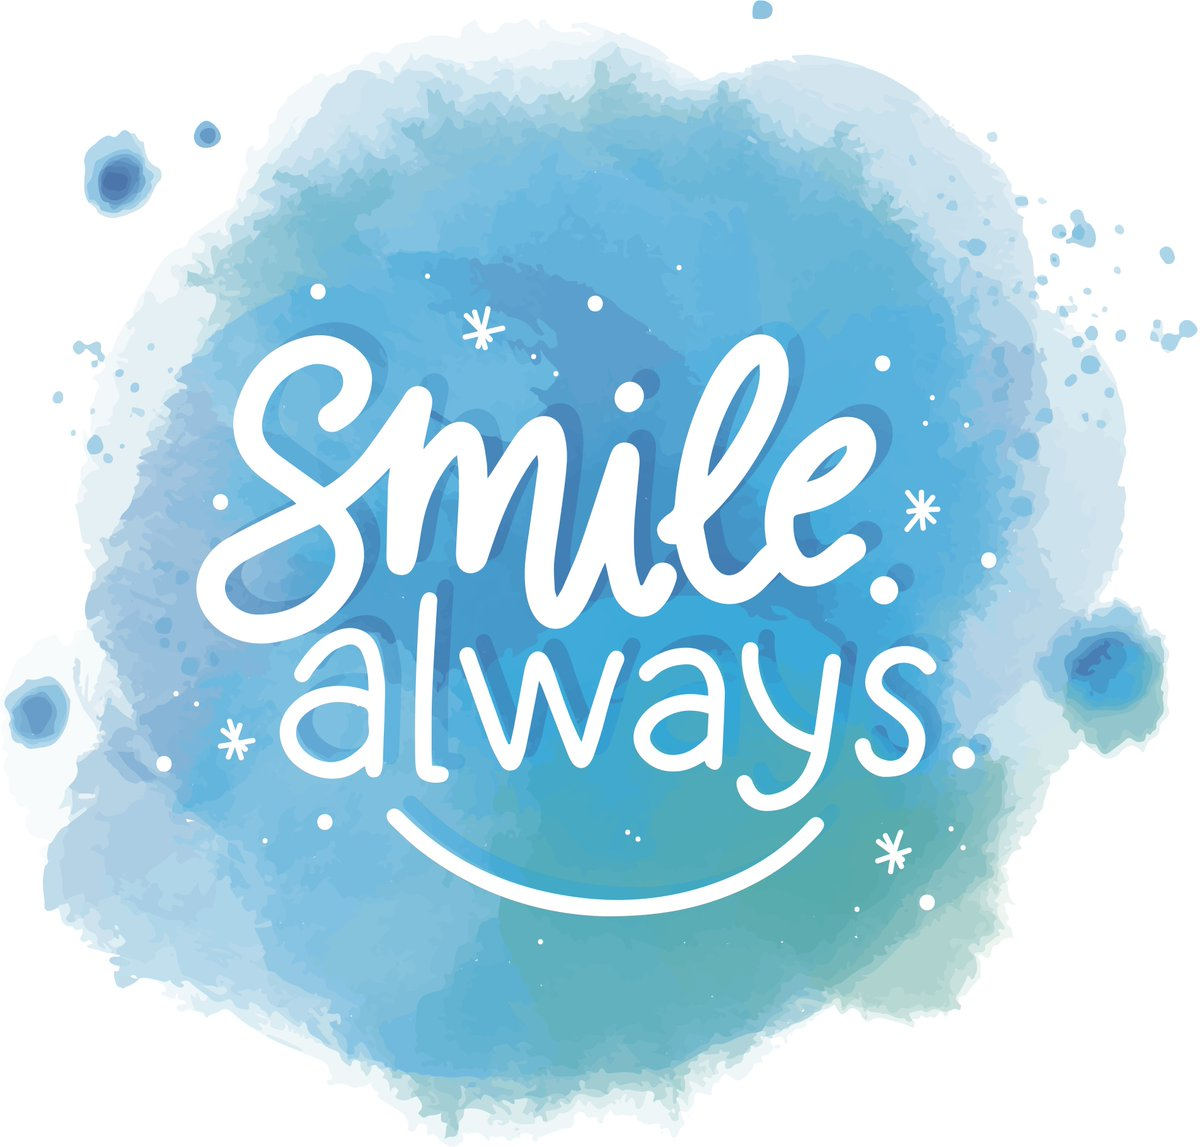 Here's today's dose of #MondayMotivation 😀 Smiling is contagious & makes others feel better too 😀 Smiling lowers stress & can have a positive effect on your wellbeing & the wellbeing of everyone around you 😀 @P3Charity #WeAreP3 #ChangingLives 😀 https://t.co/ATtHwjqzeG